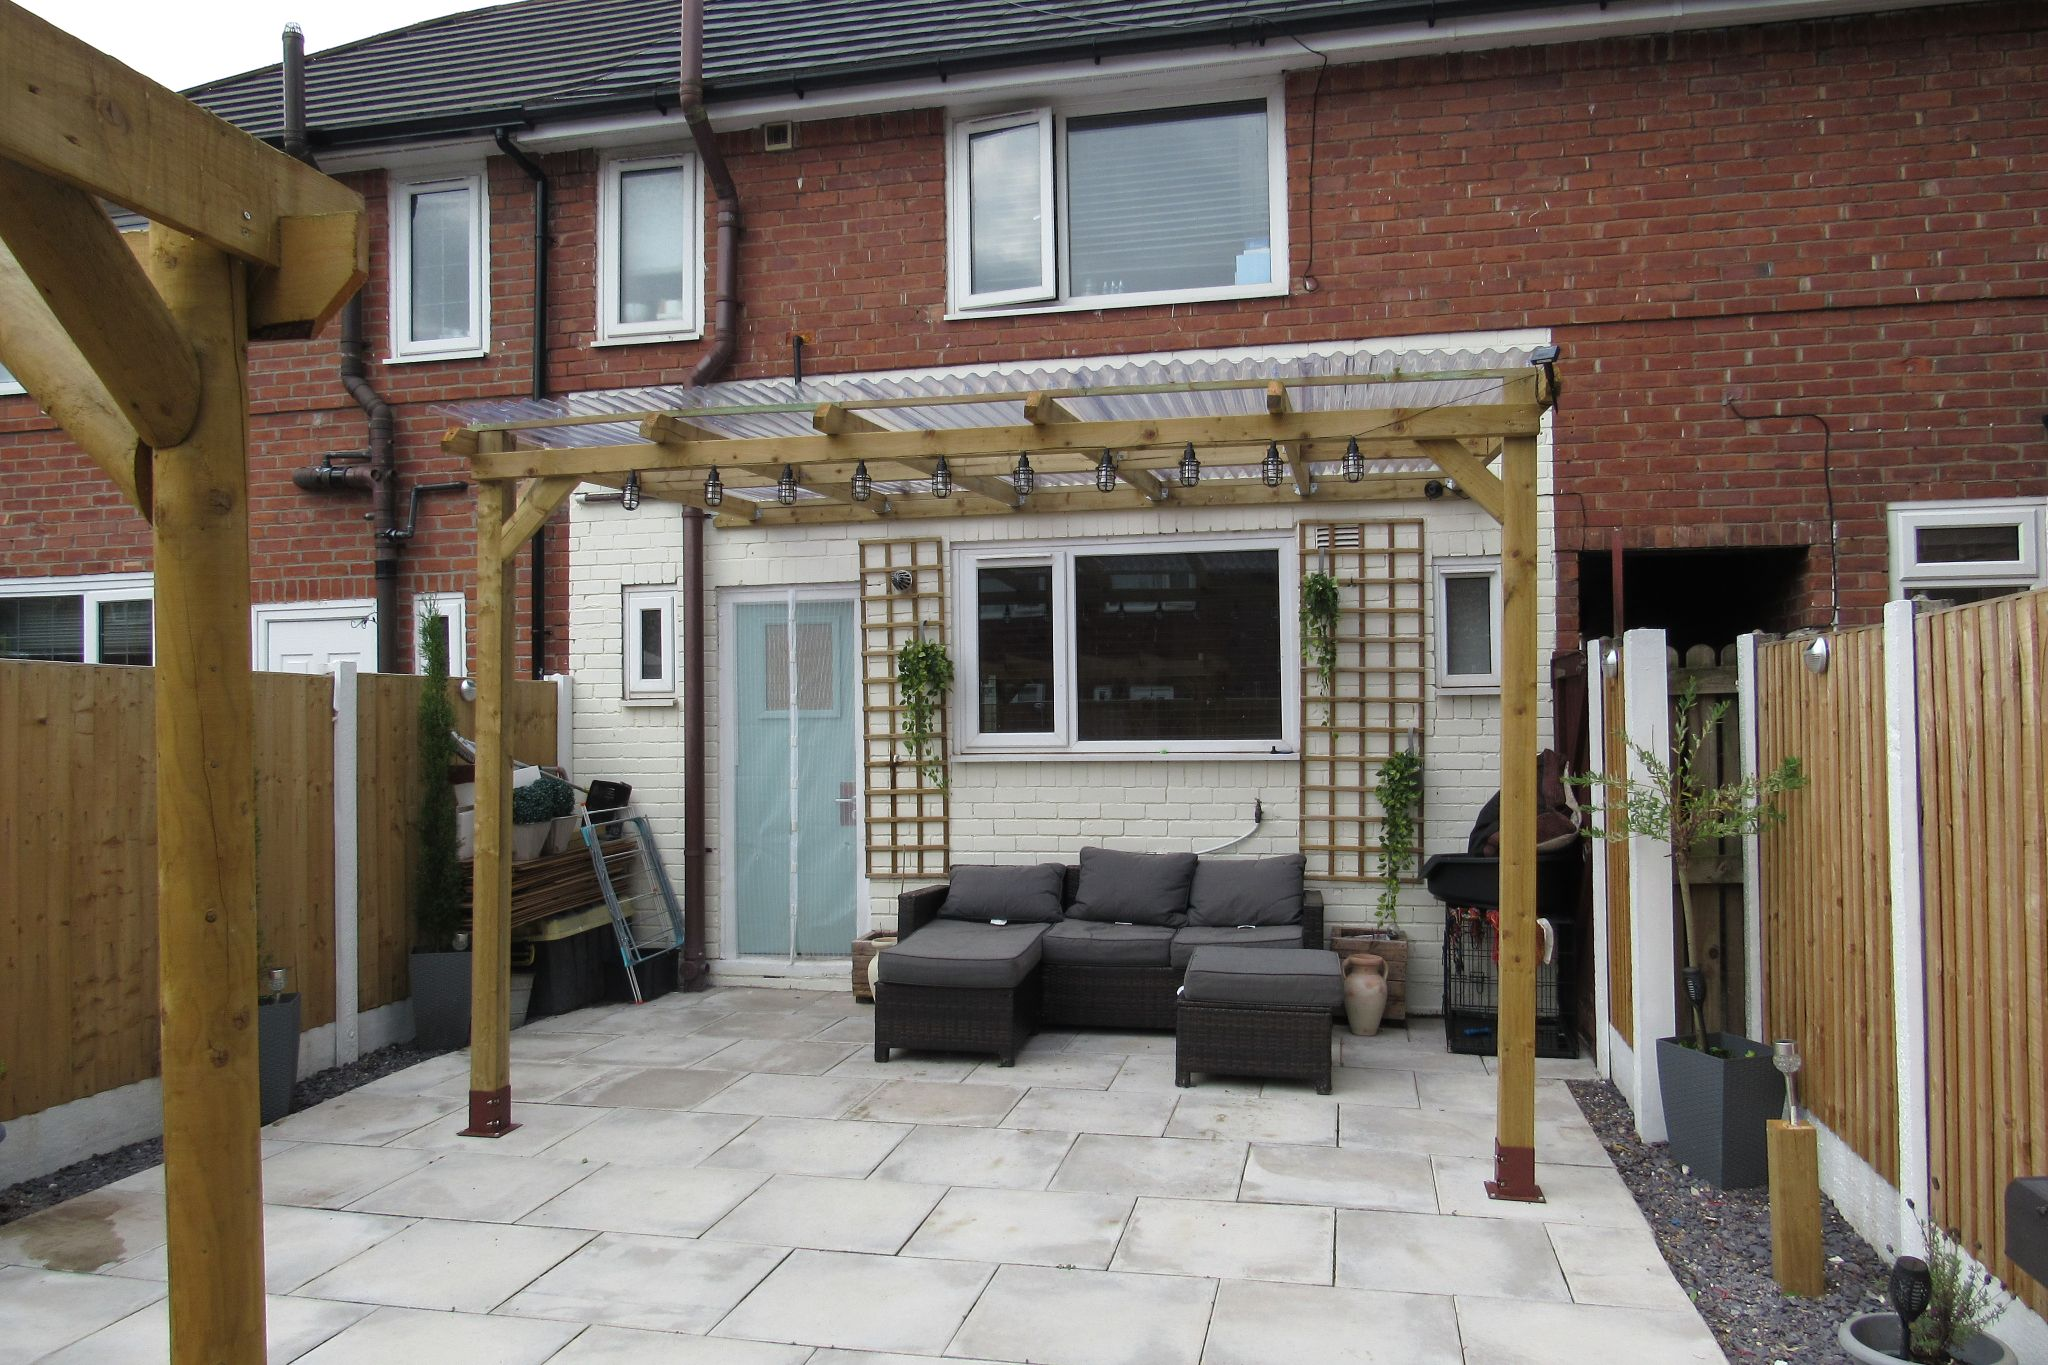 3 bedroom mid terraced house SSTC in Manchester - Photograph 9.